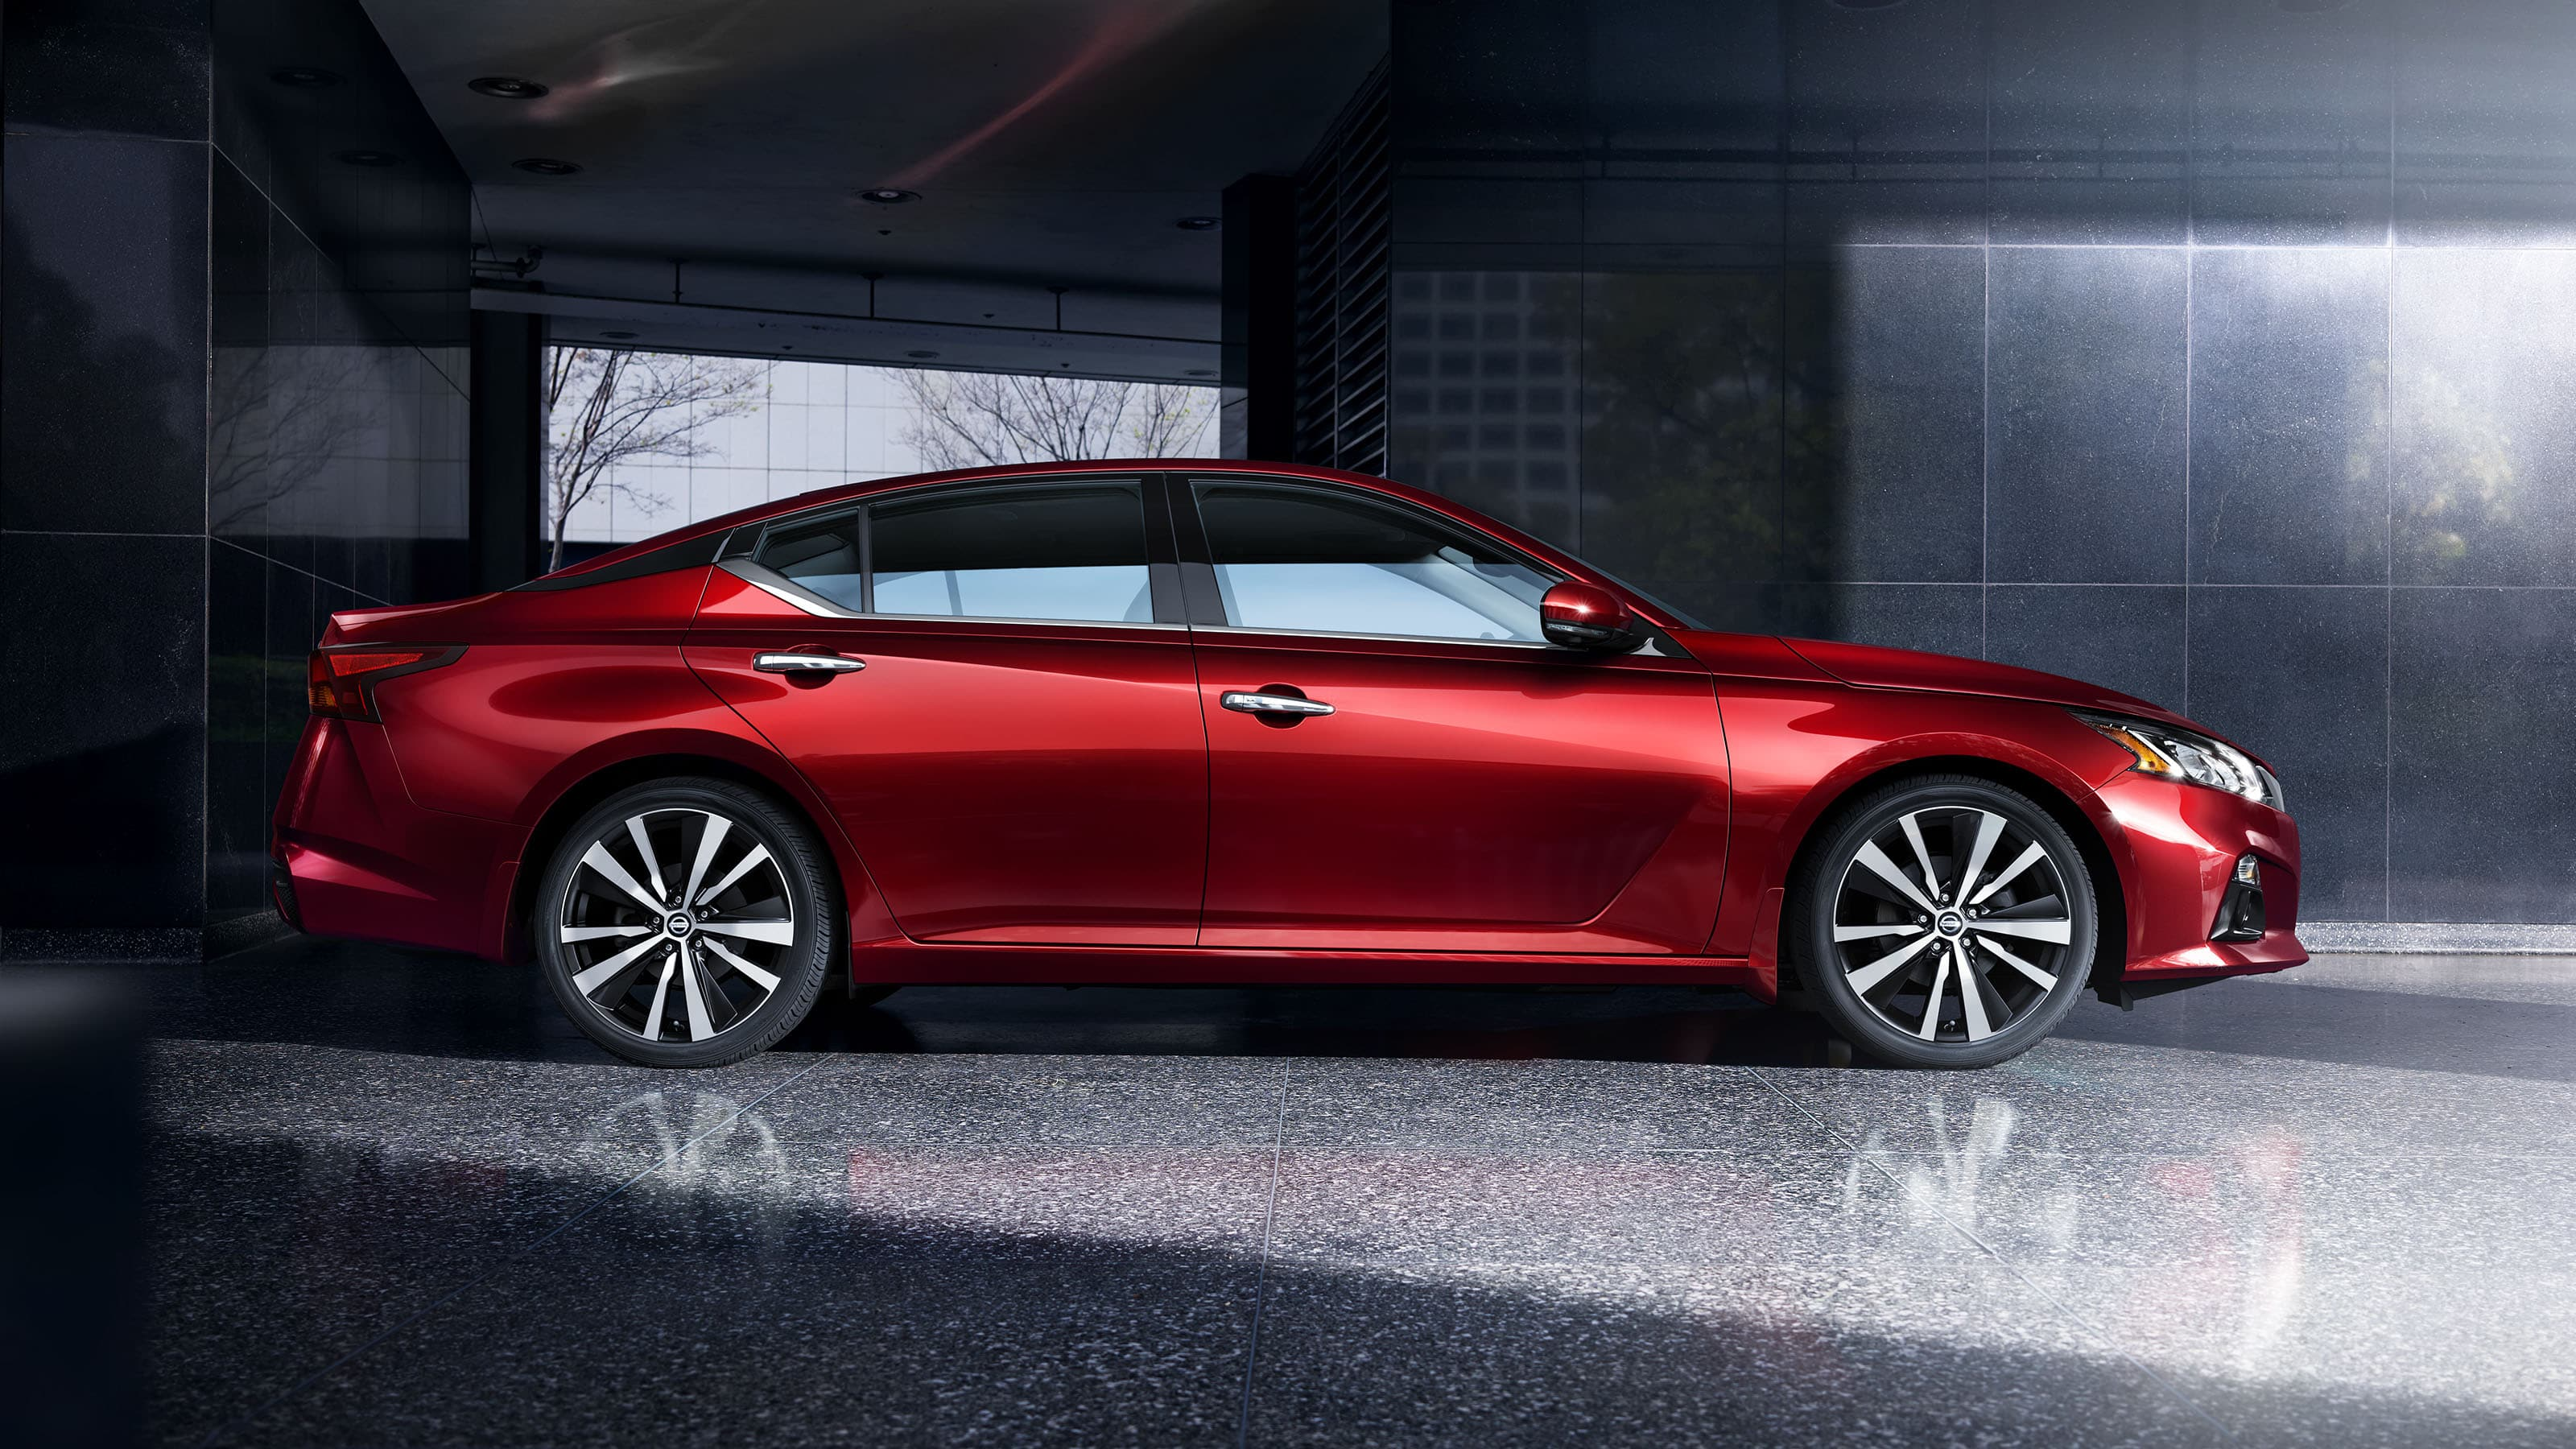 2020 Nissan Altima Side Exterior Red Picture